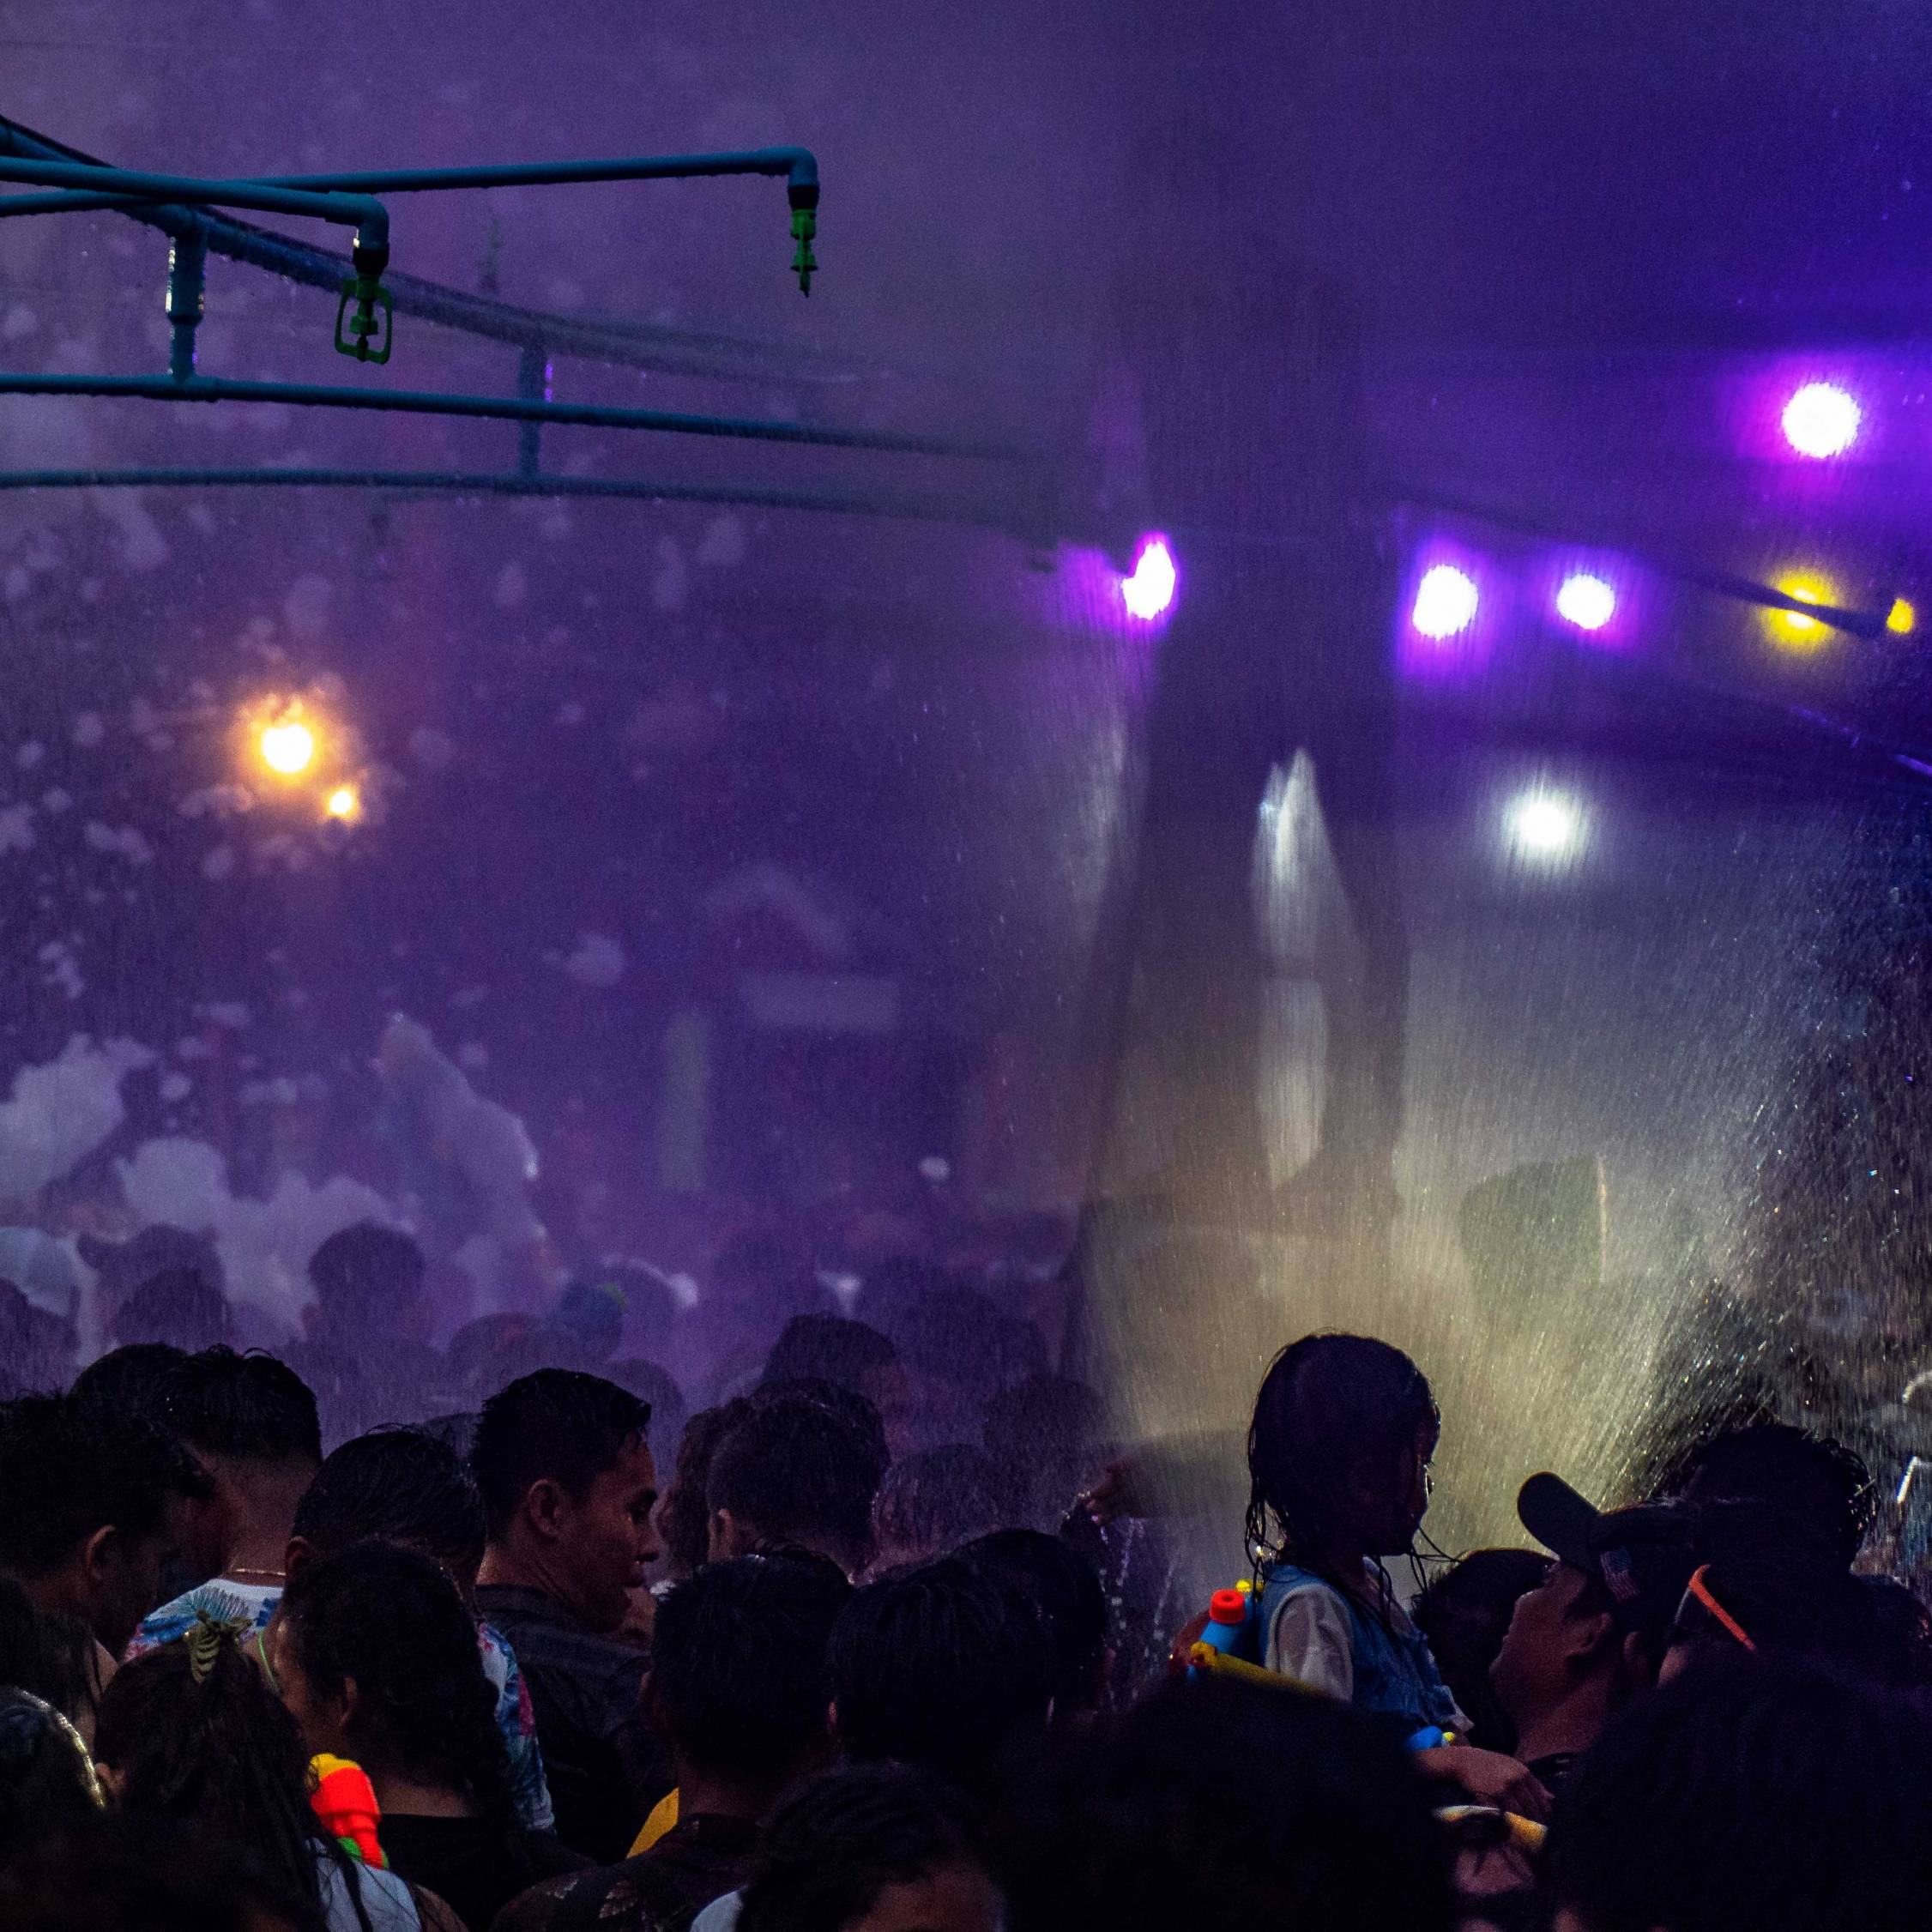 SONGKRAN PARTY AT SIEM REAP